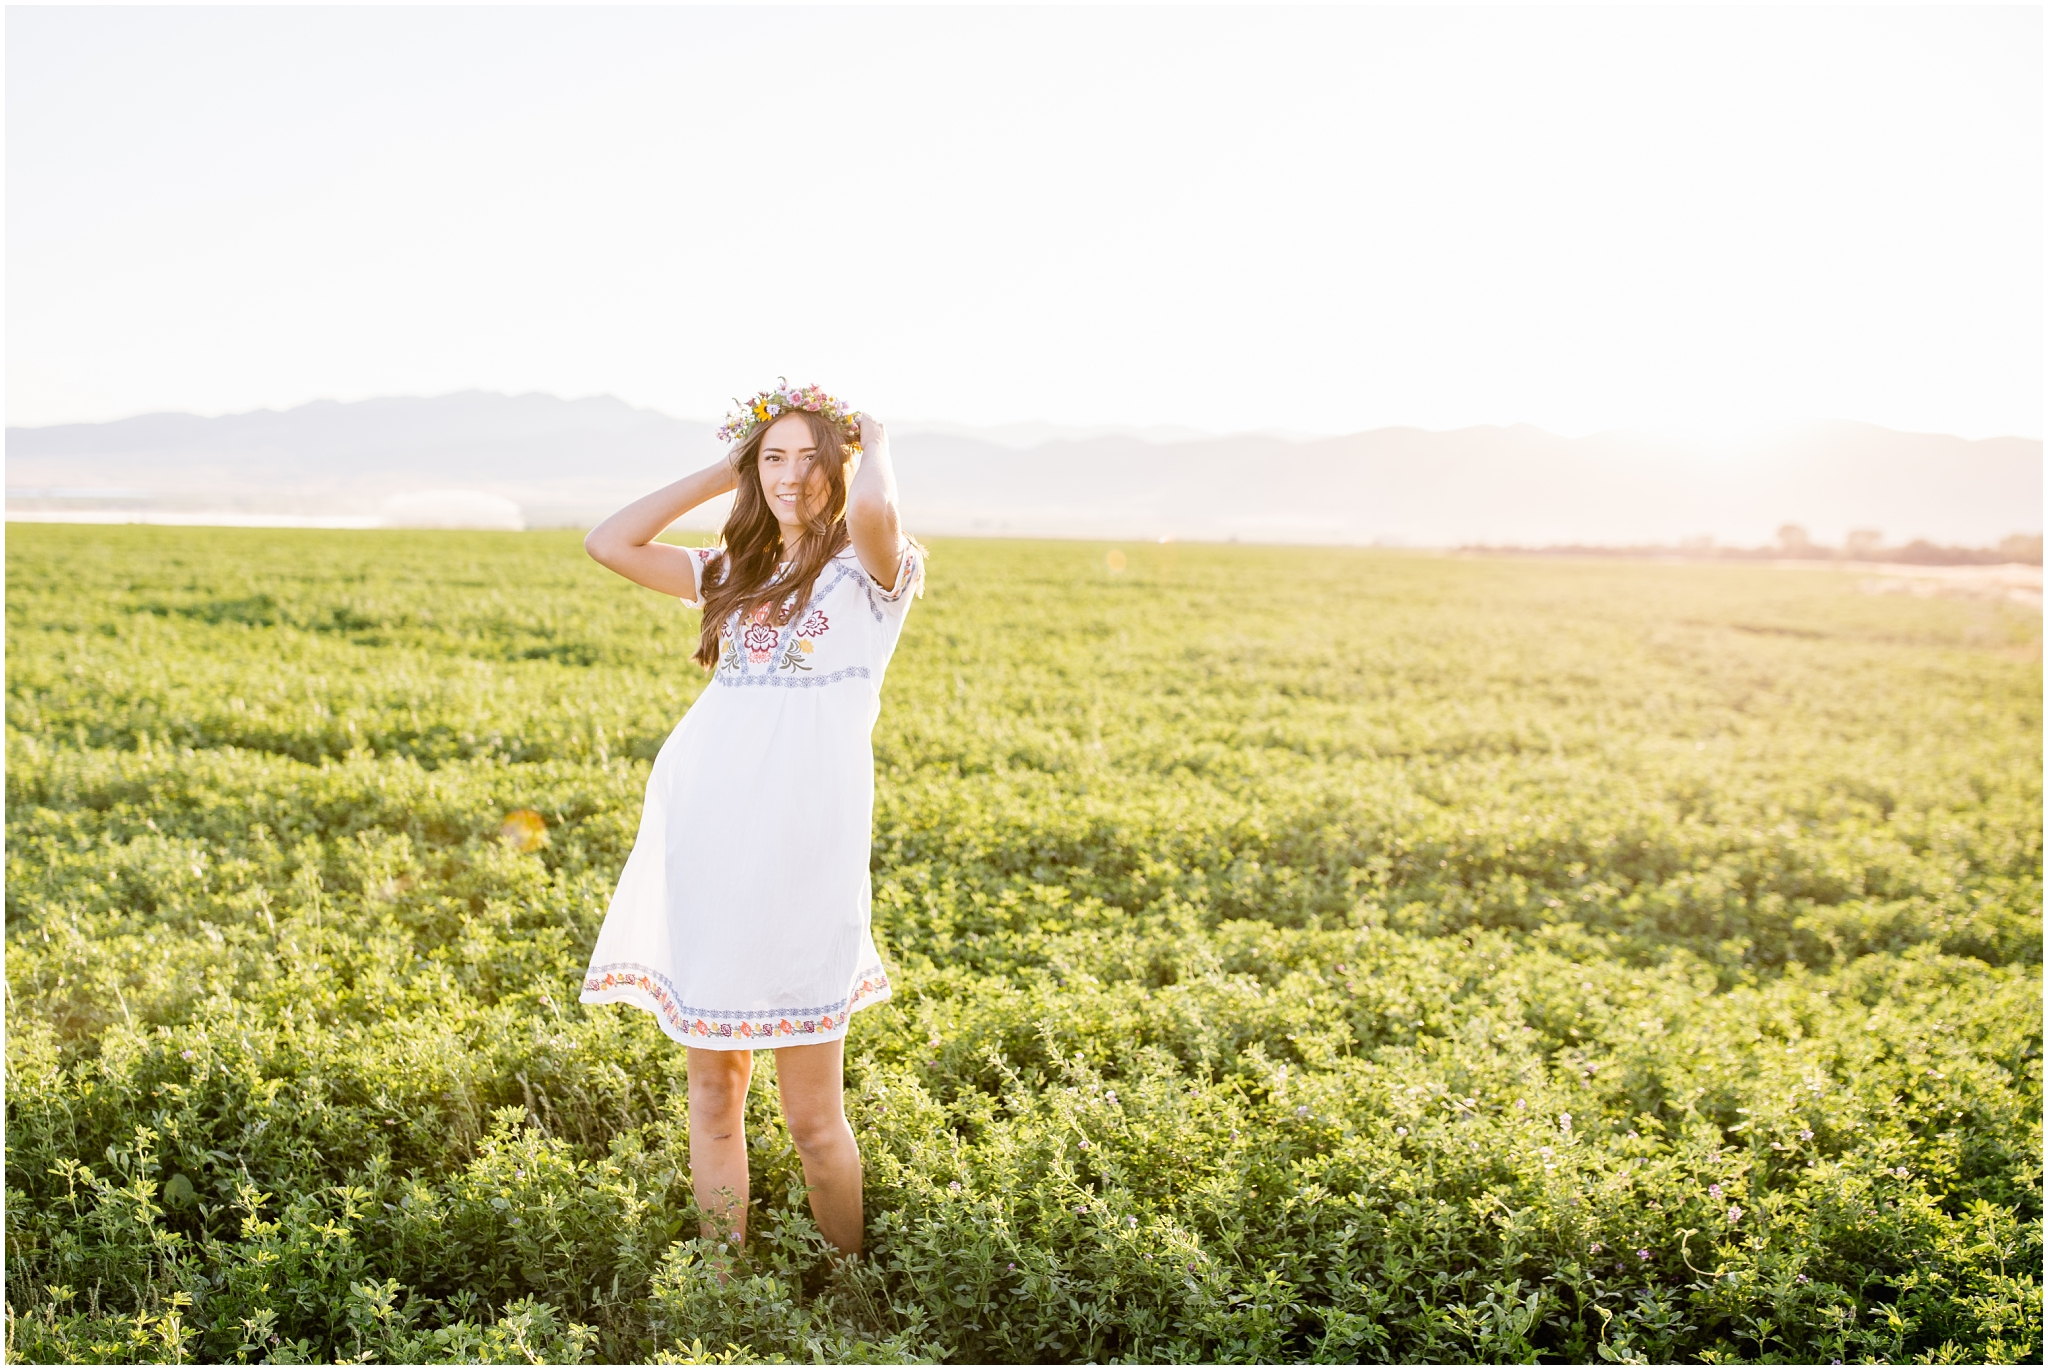 Adelyn--72_Lizzie-B-Imagery-Utah-Family-Photographer-Park-City-Salt-Lake-City-Central-Utah-Senior-Session.jpg